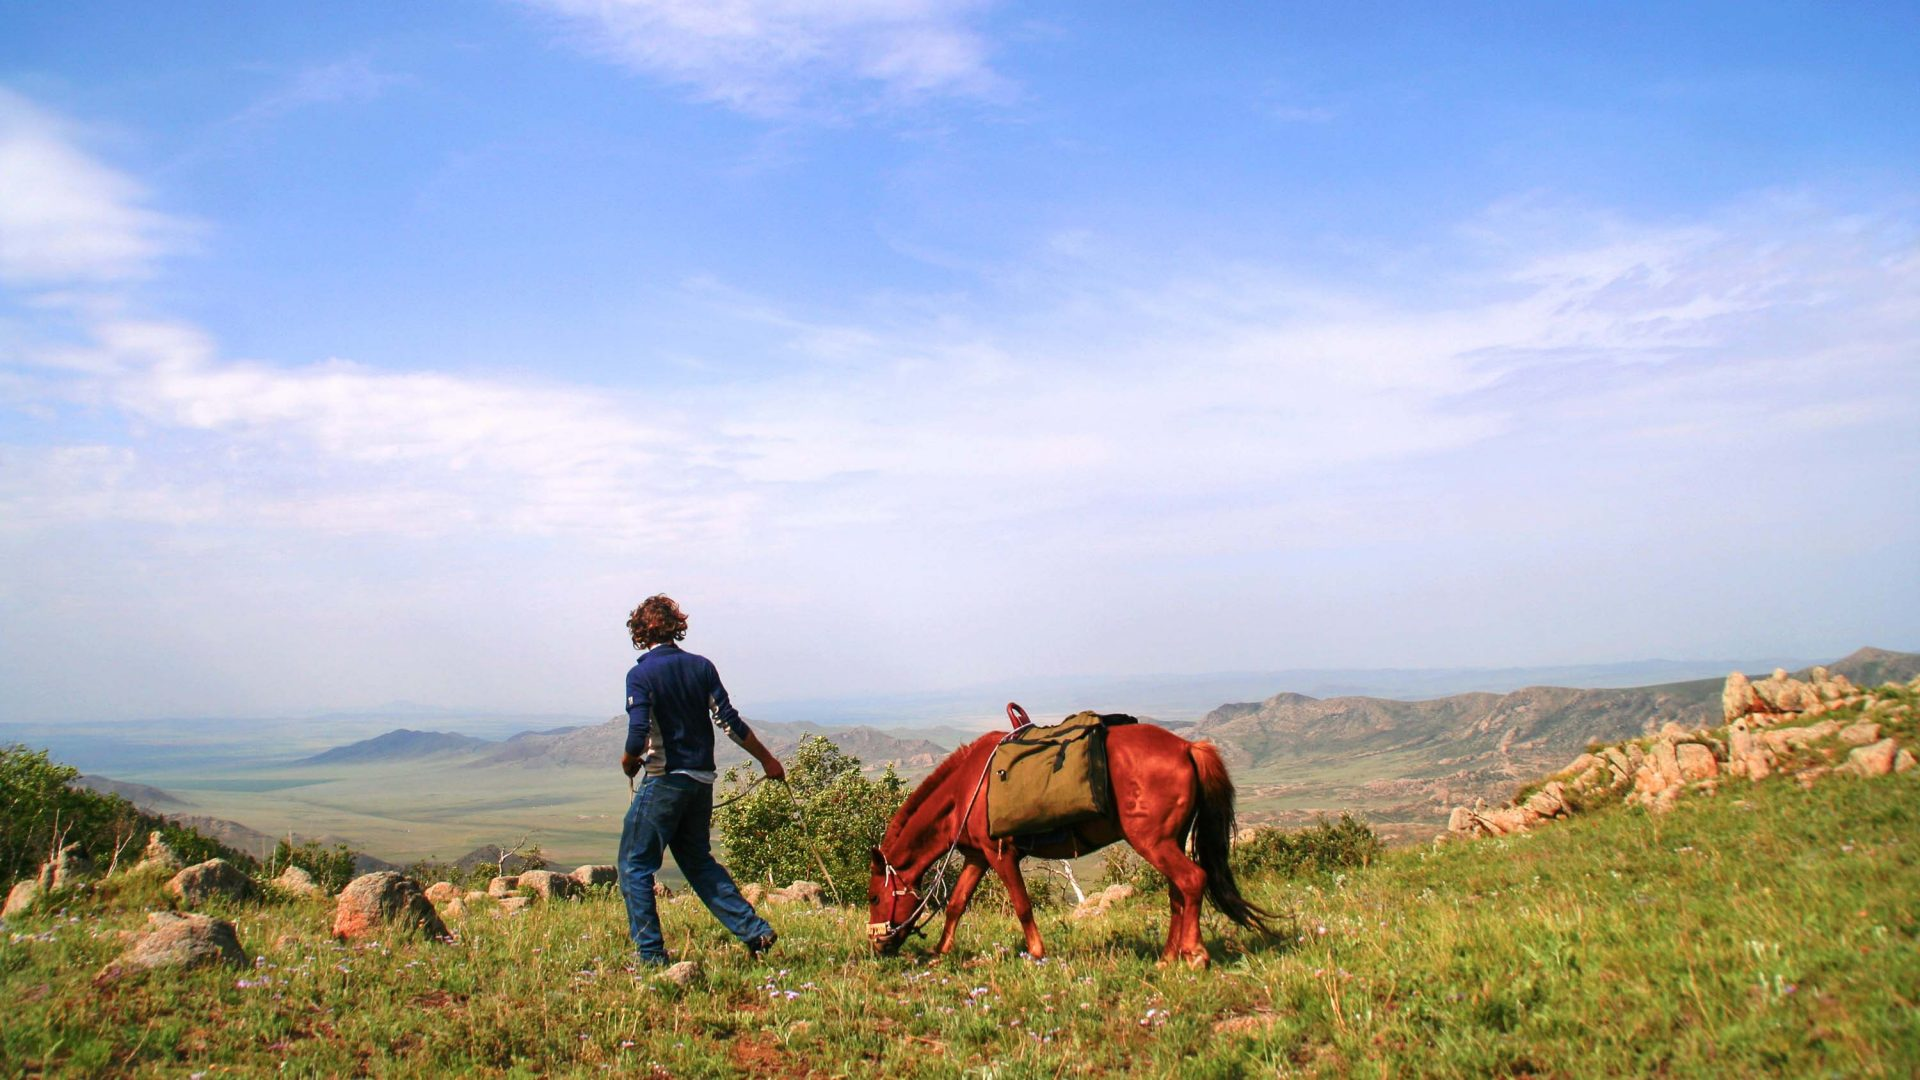 Charlie Walker and 'Little Nicky' during his journey through the Mongolian grasslands.